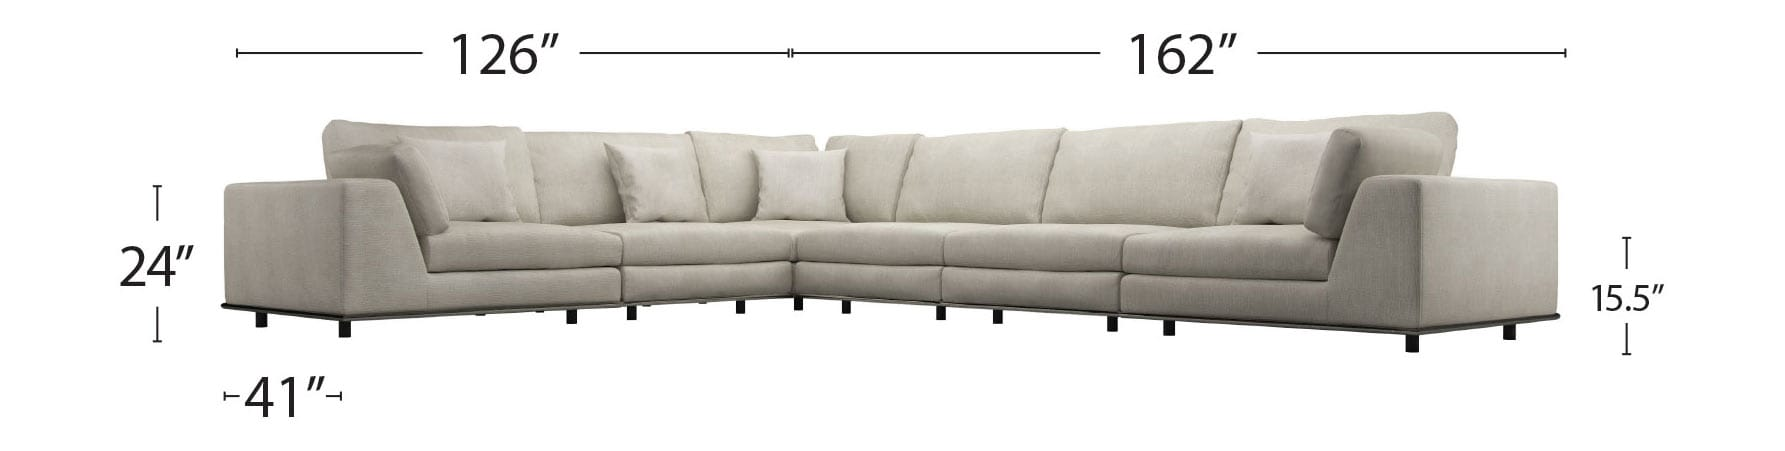 100 l sectional couch marvelous art l sectional sofa beauti